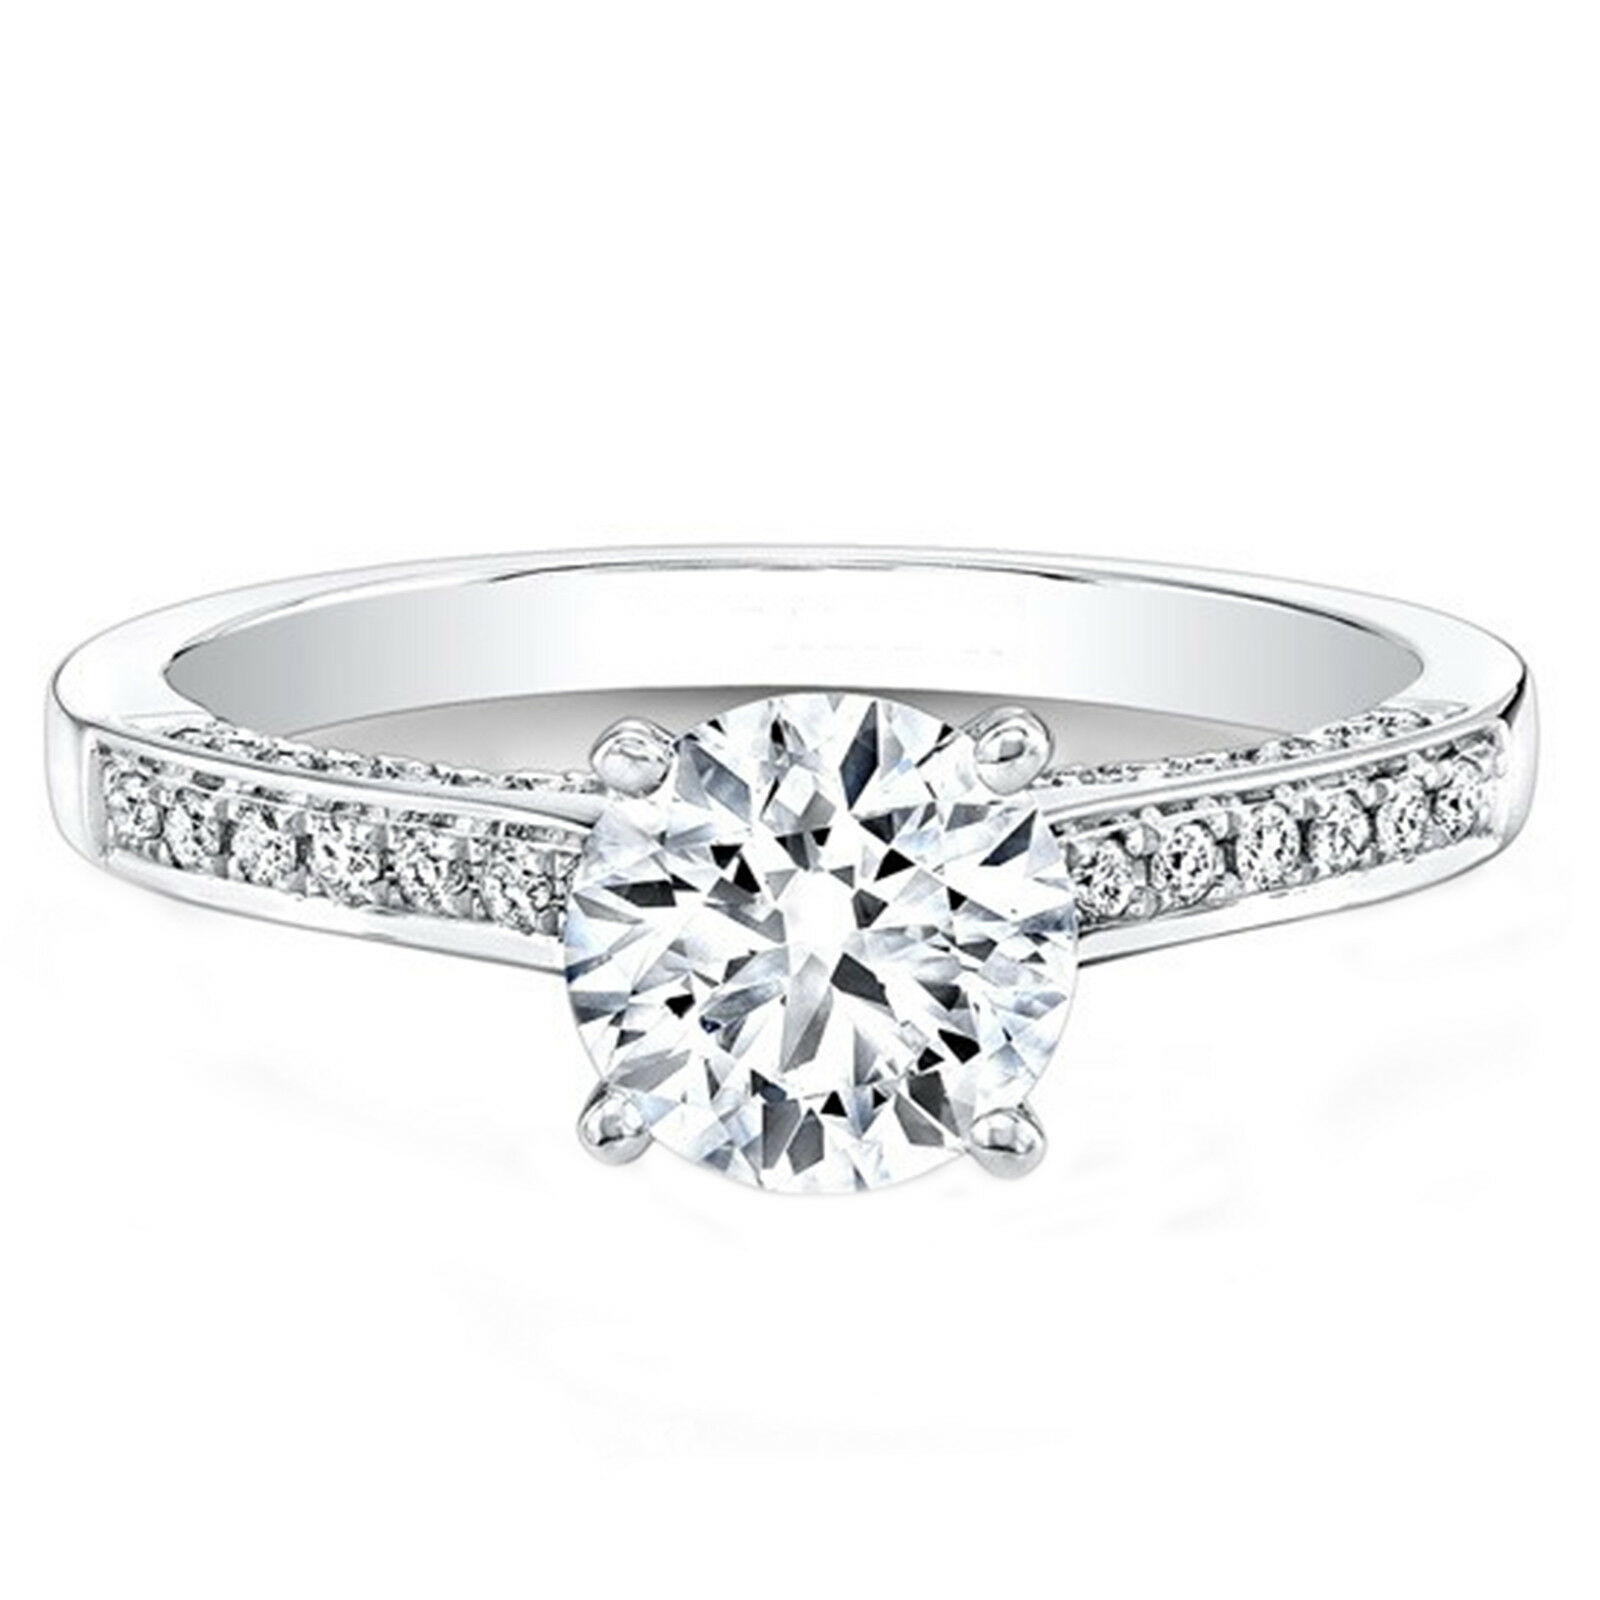 0.64 Ct Round Cut Real Diamond Engagement 14K Solid White gold Ring Size 6 5.5 7